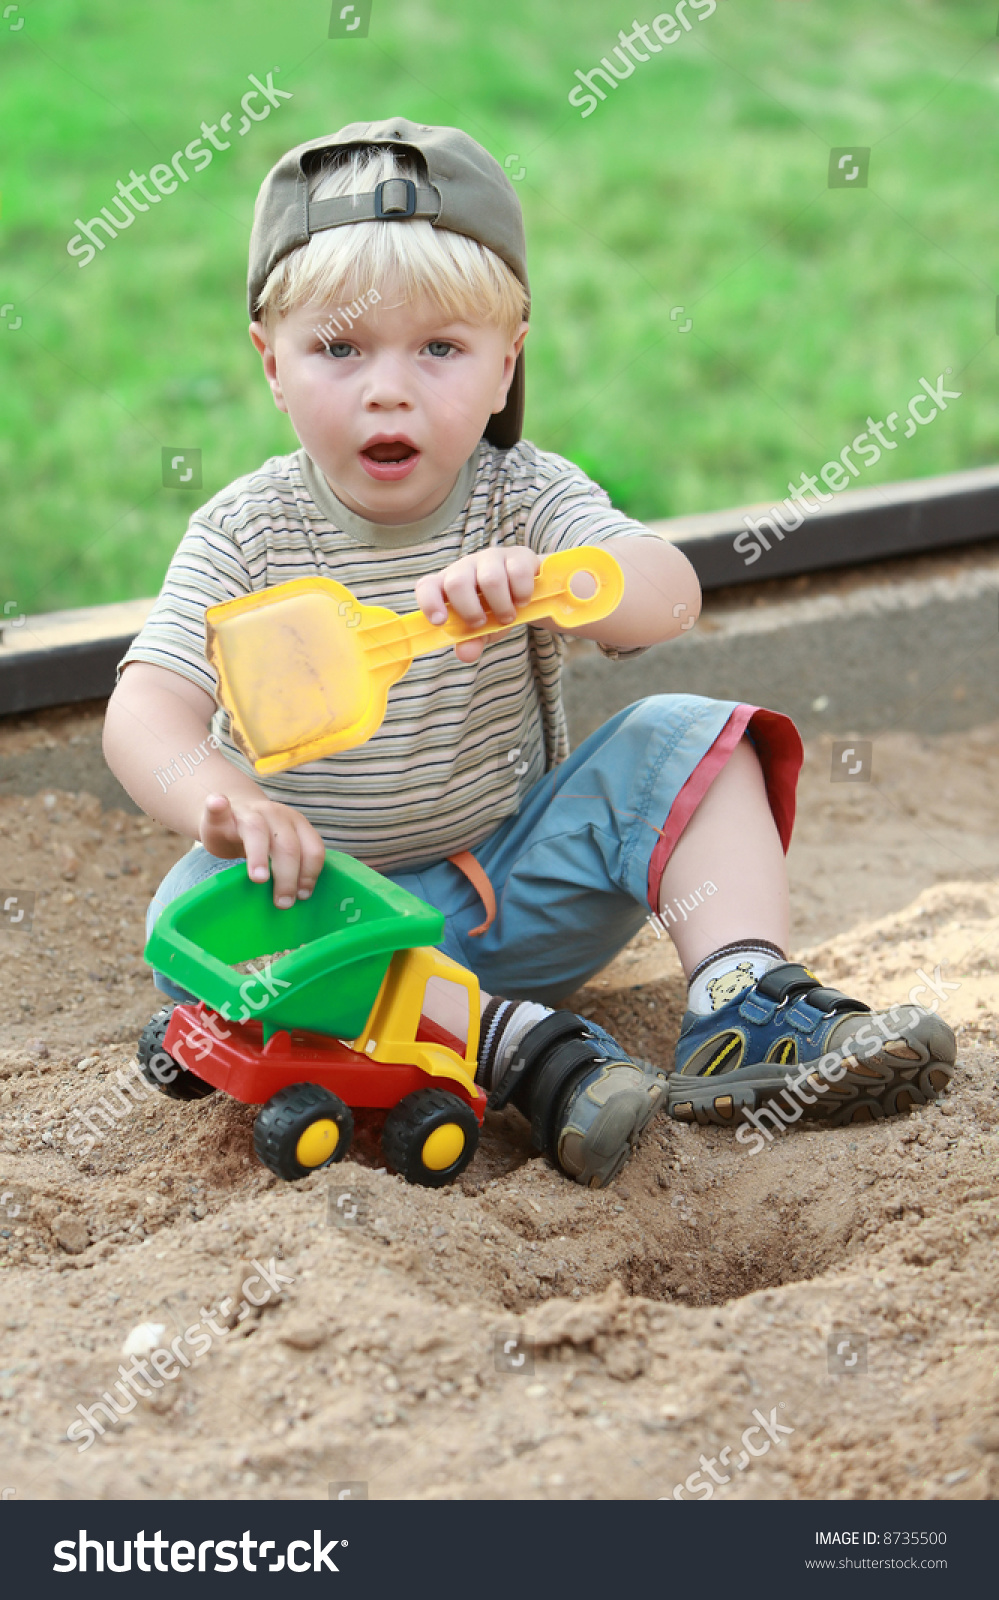 Hunting Toys For Little Boys : Boy little children child play playground color toy sand